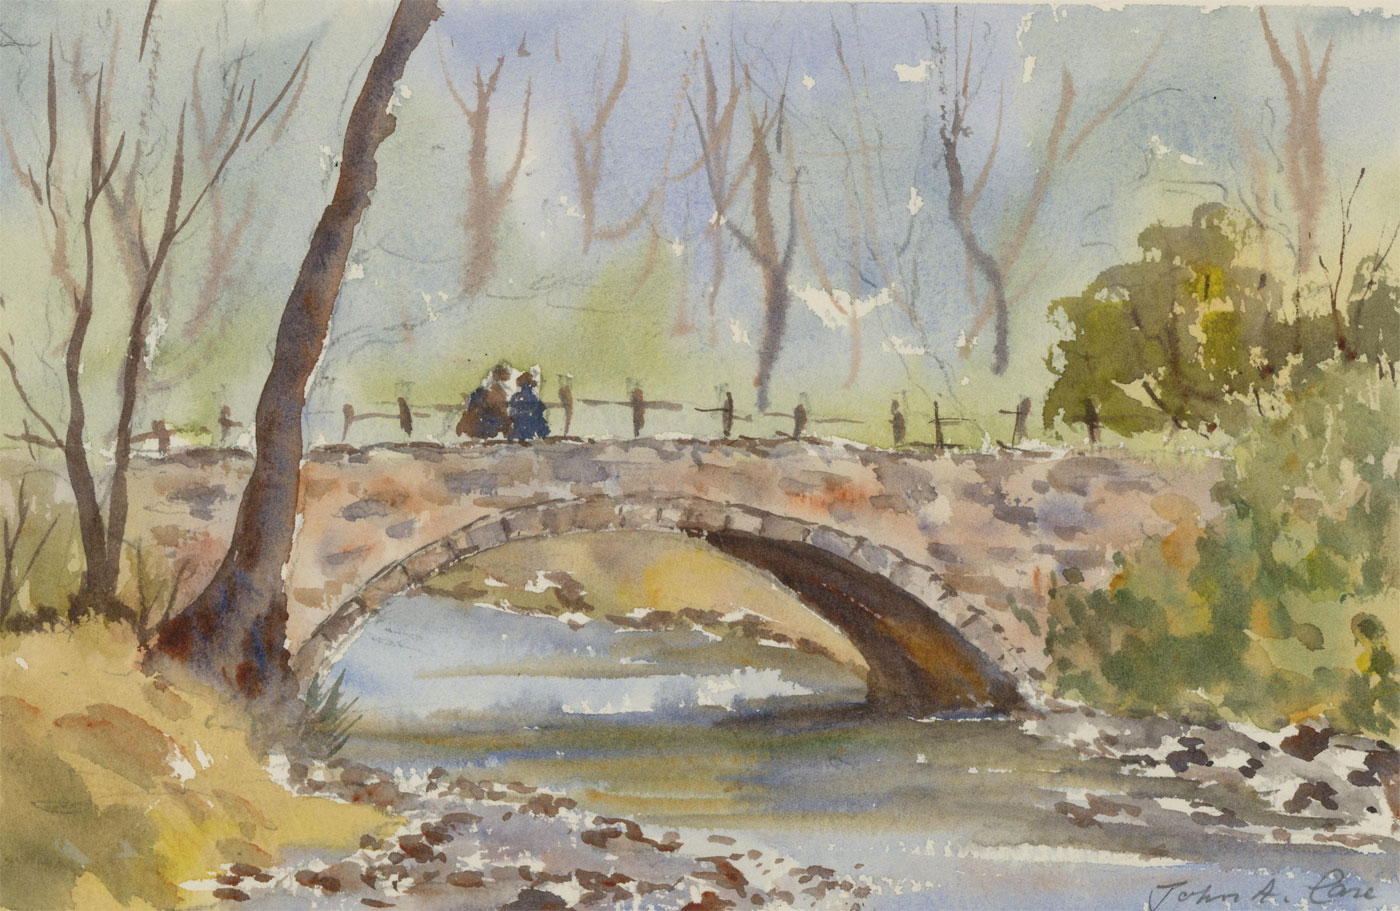 John A. Case - Set of Two Contemporary Studies, Meeting on The Bridge